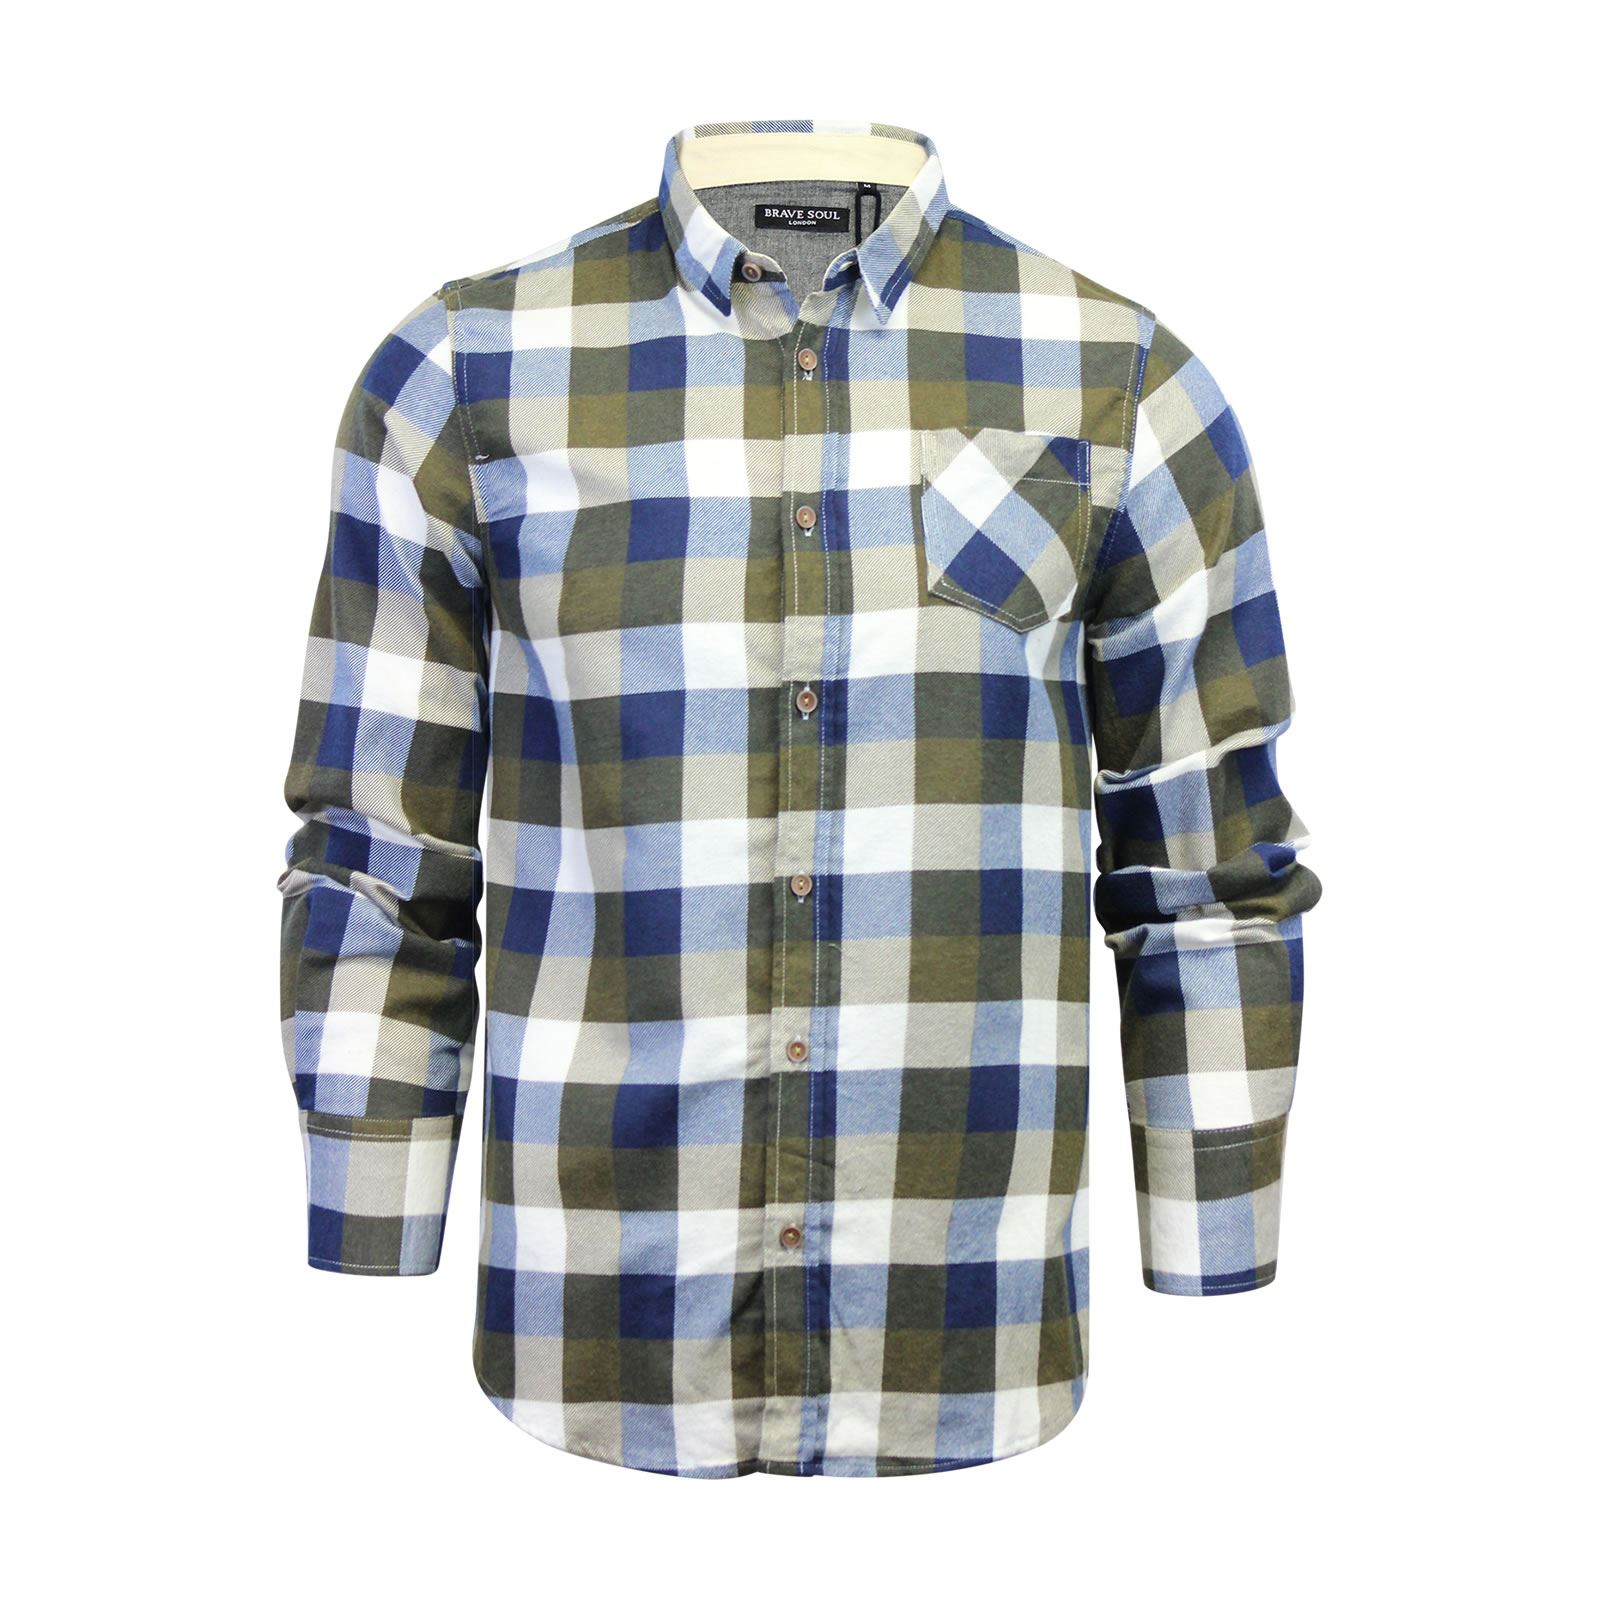 Brave-Soul-Mens-Check-Shirt-Flannel-Brushed-Cotton-Long-Sleeve-Casual-Top thumbnail 59